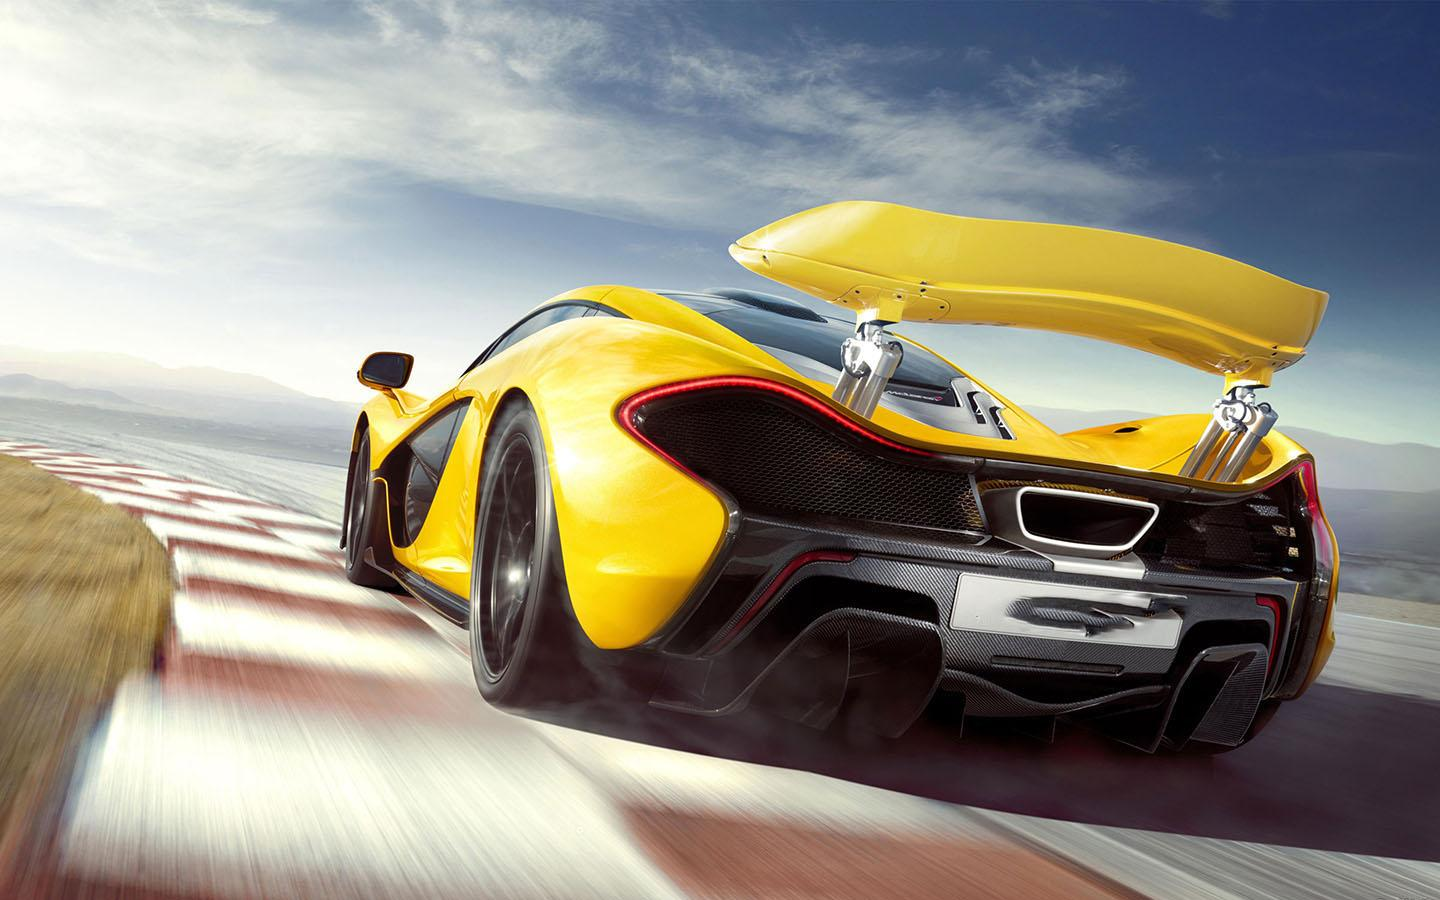 Sports car wallpaper android apps on google play sports car wallpaper screenshot voltagebd Images